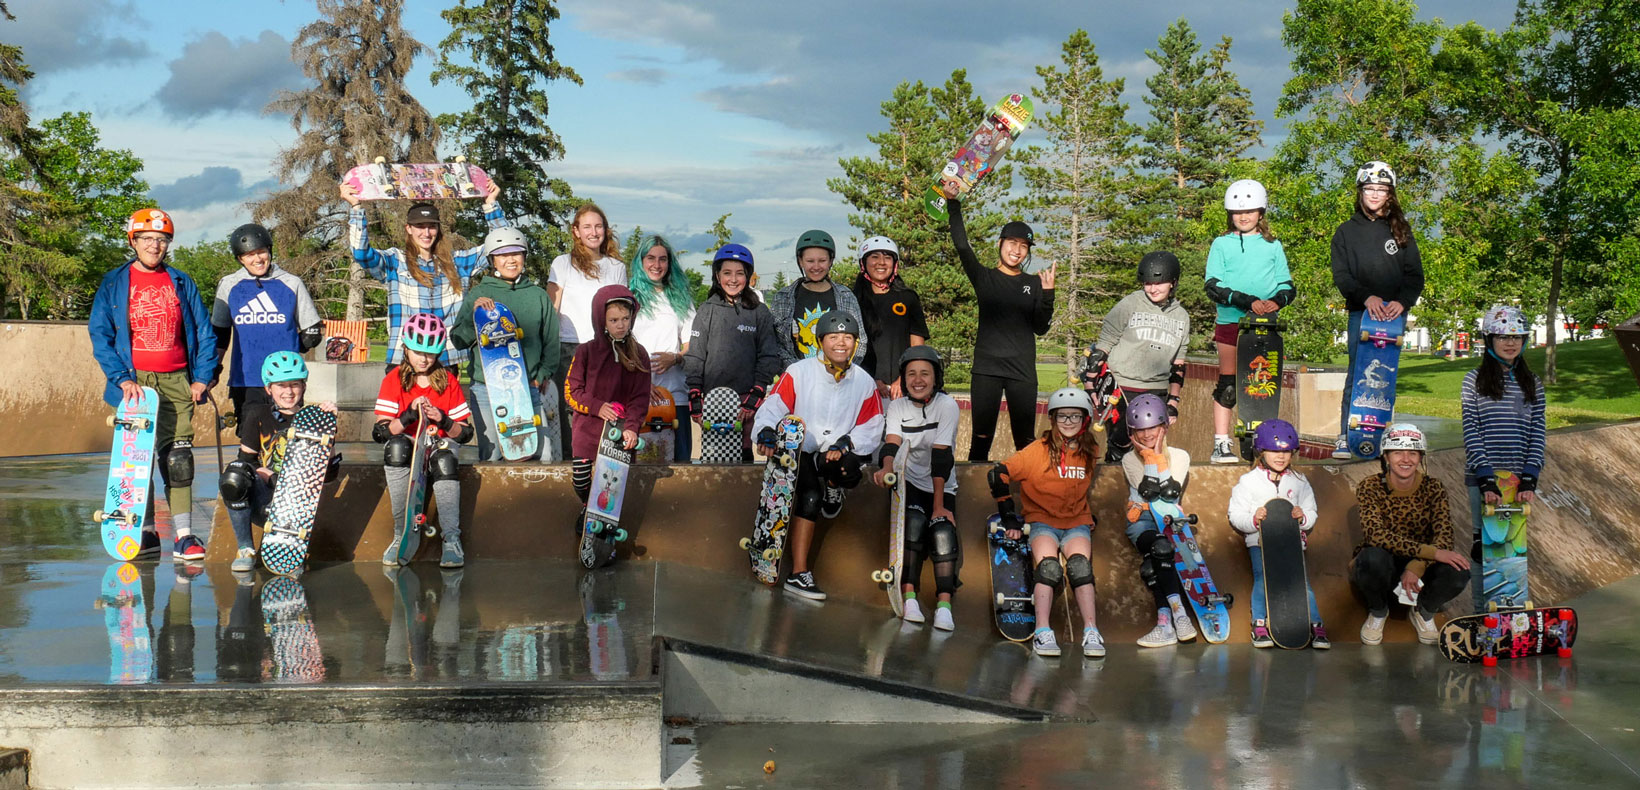 100 Percent skateclub for girls and women group photo